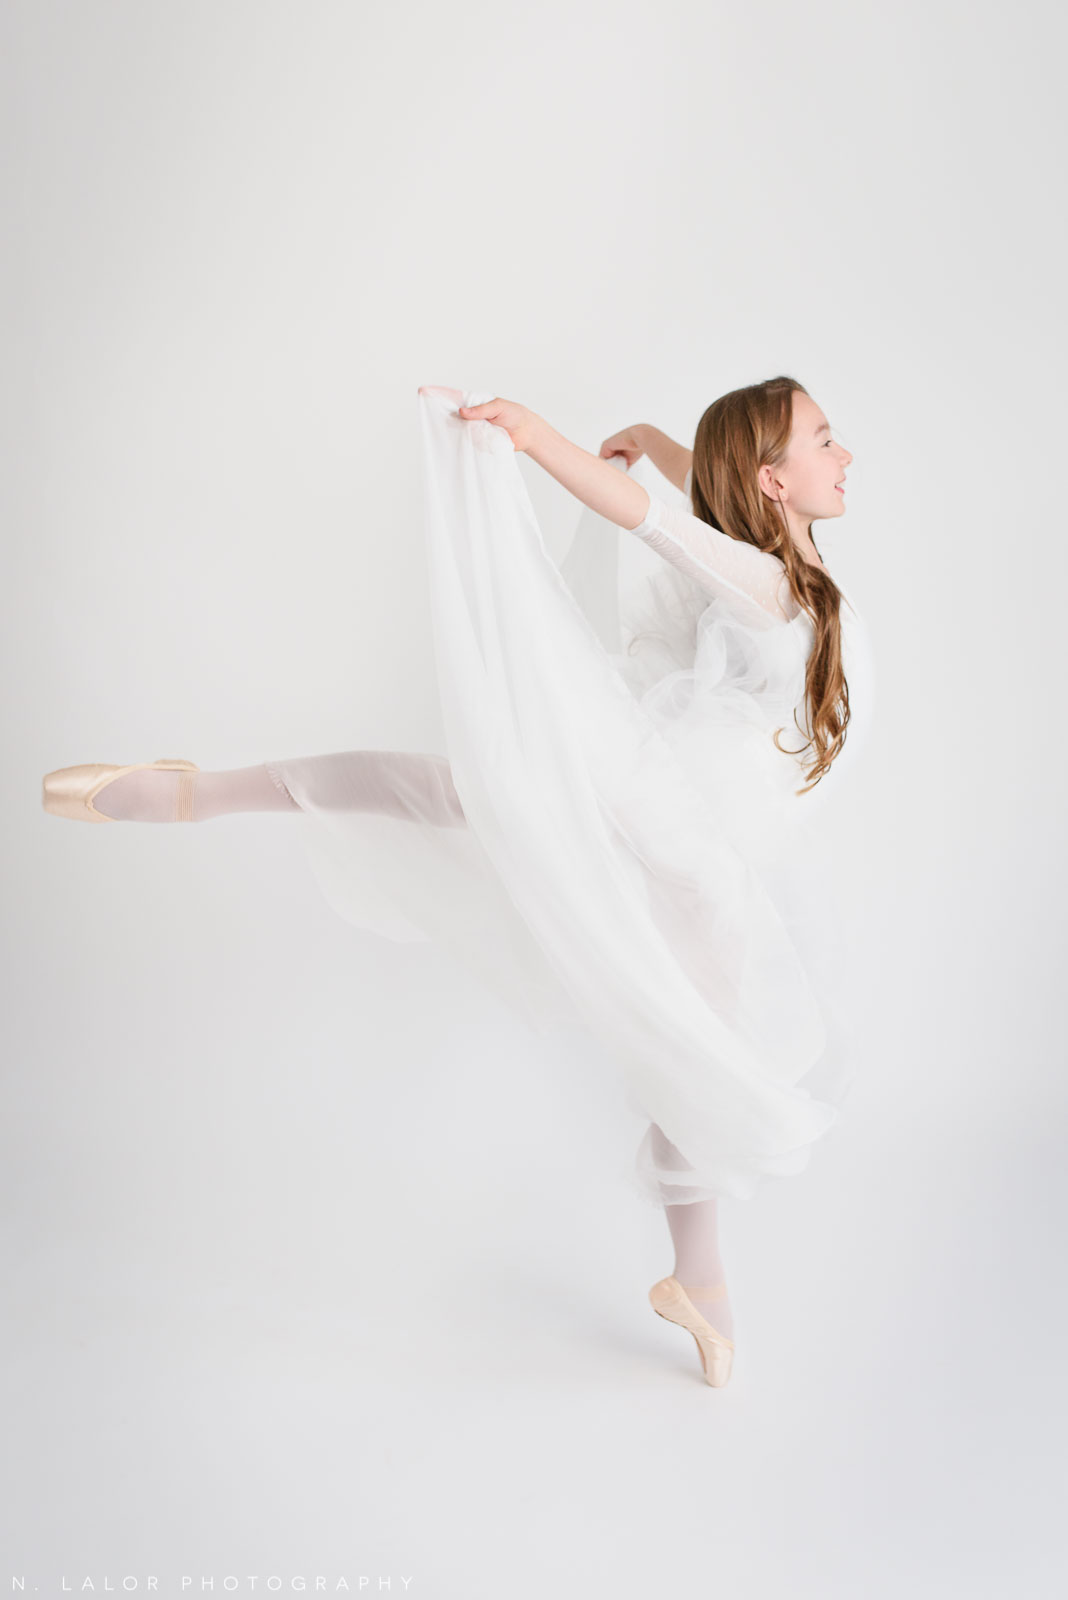 Dancing. Tween ballerina photoshoot with N. Lalor Photography. Greenwich, Connecticut.